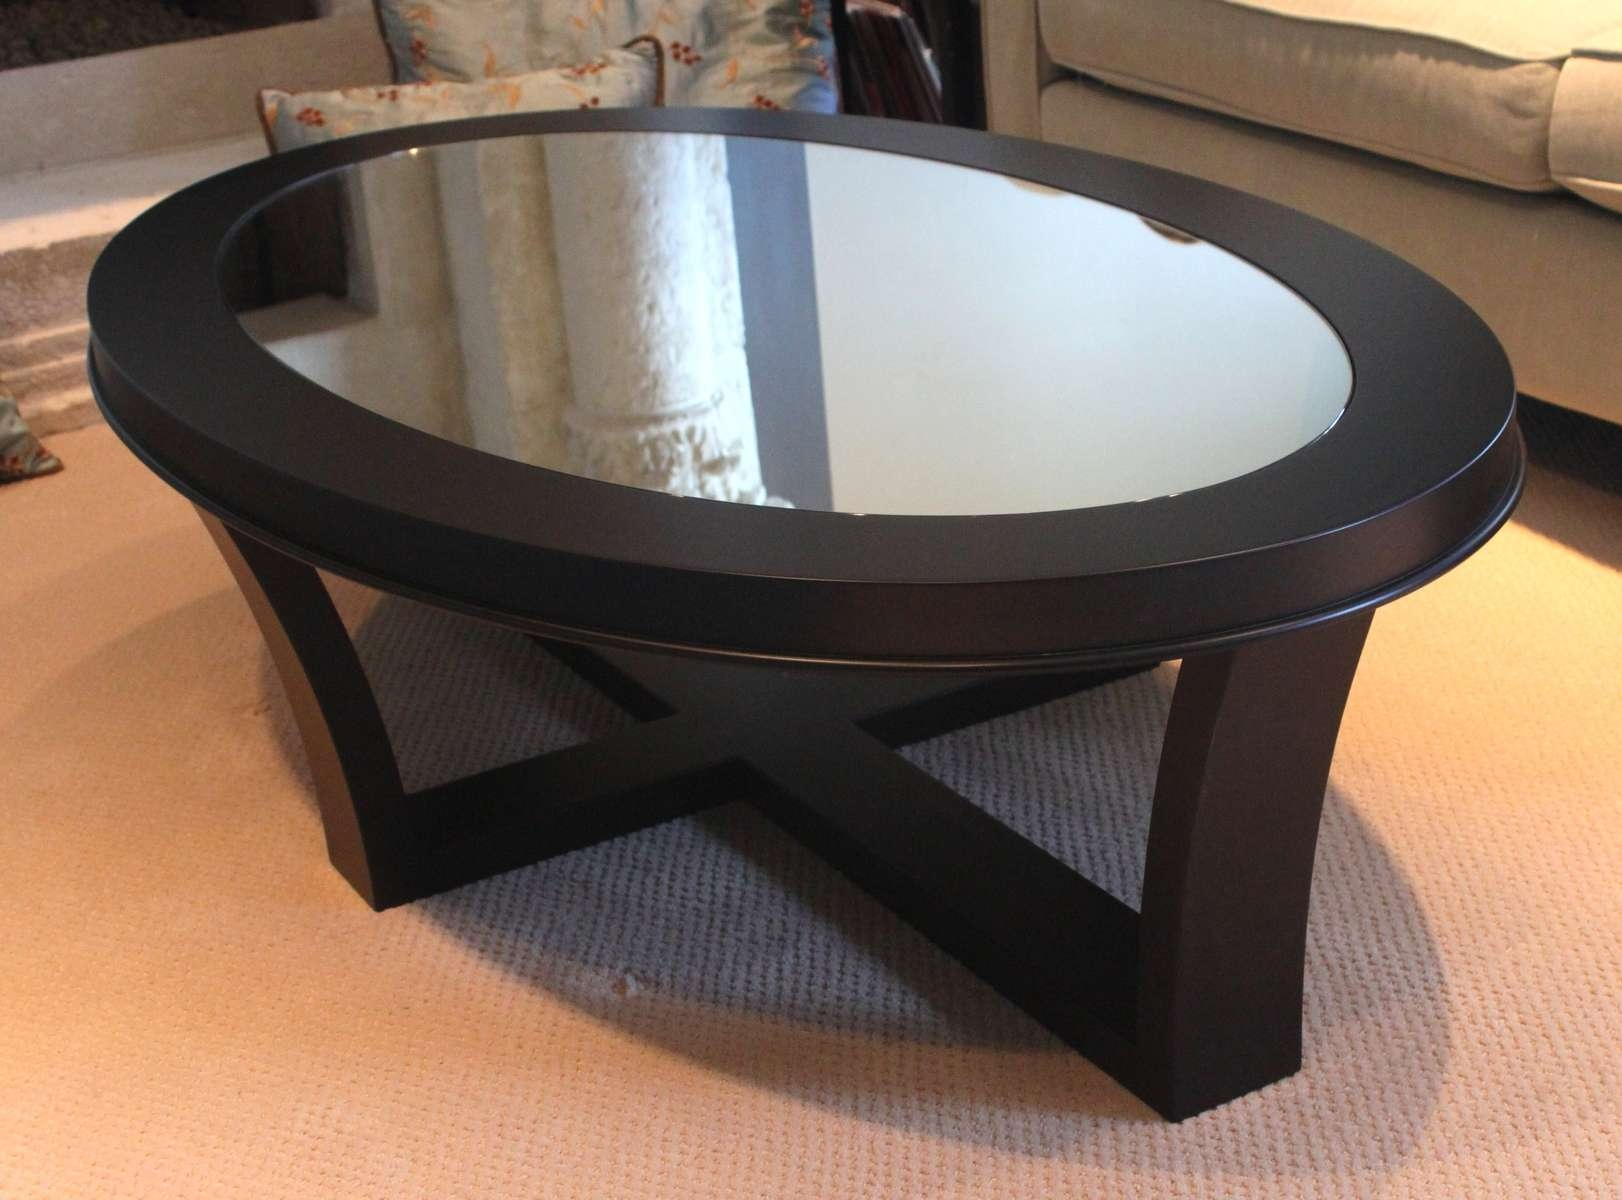 Coffee Table, Black Oval Coffee Table Oval Coffee Table Glass Top Regarding Current Black Oval Coffee Table (View 5 of 20)